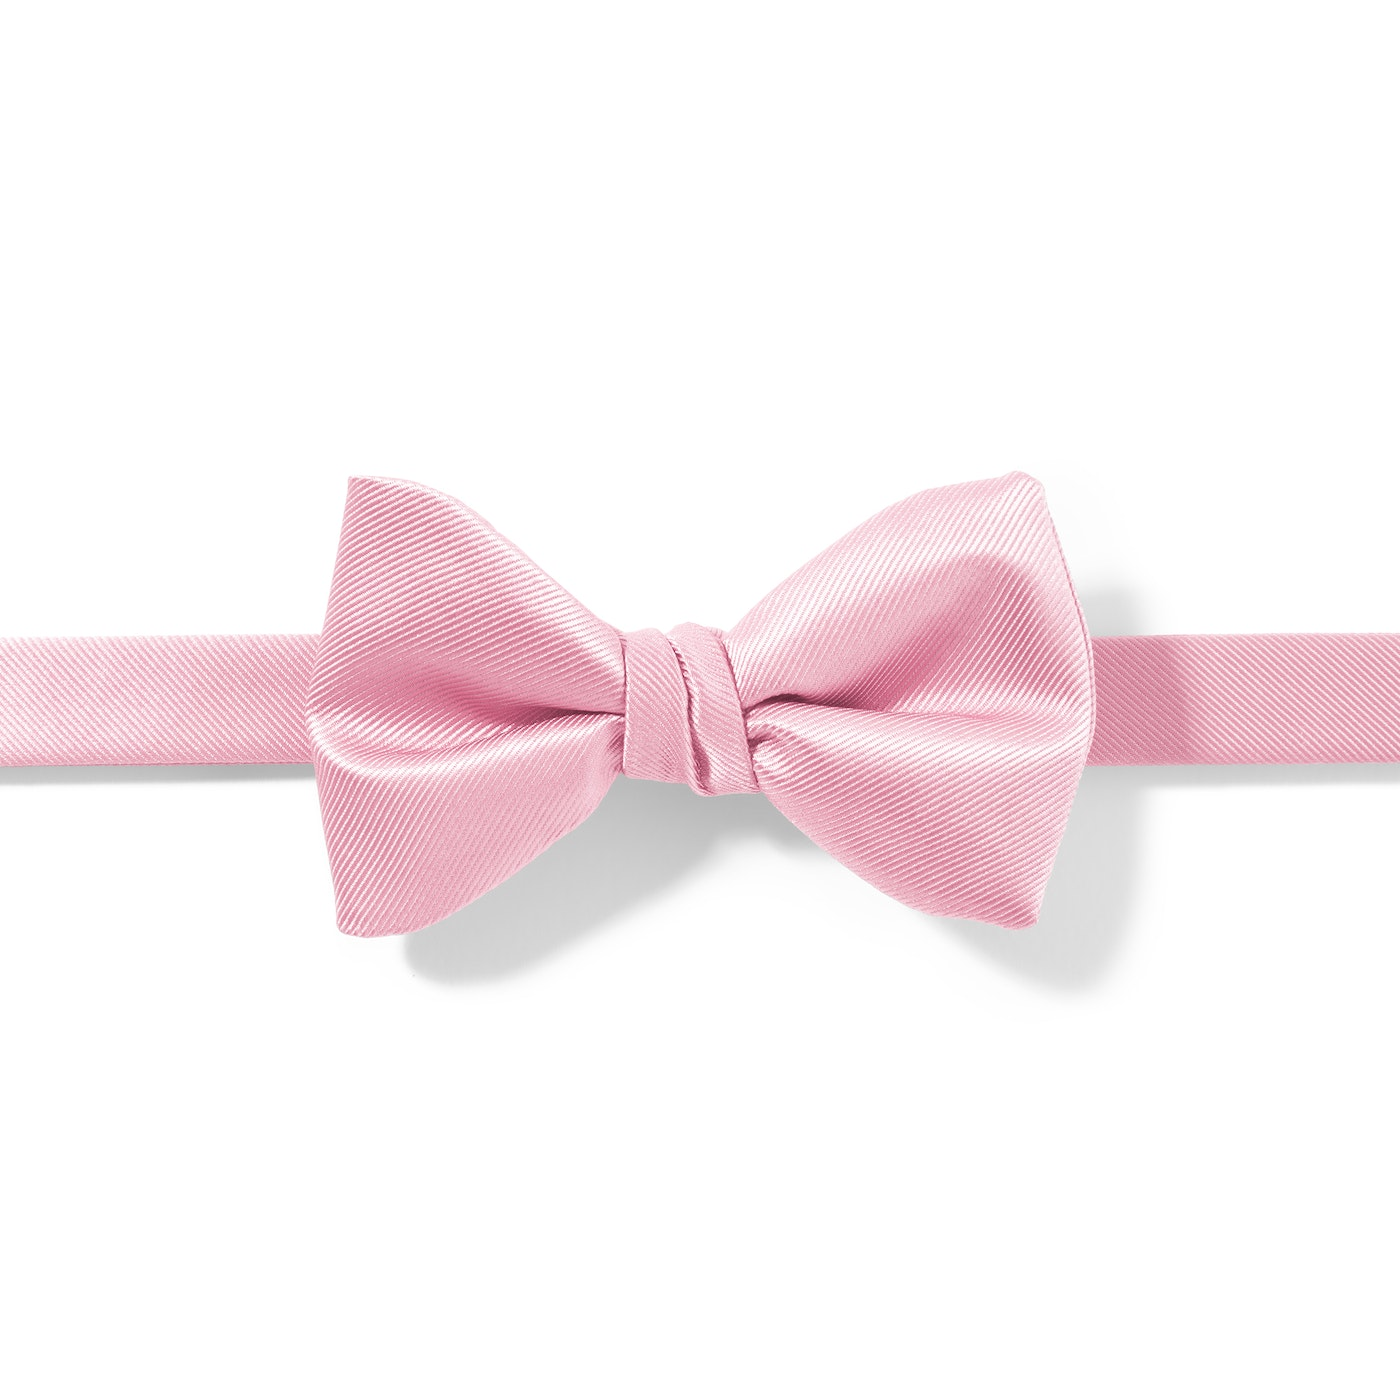 Tickled-Pink Pre-Tied Bow Tie